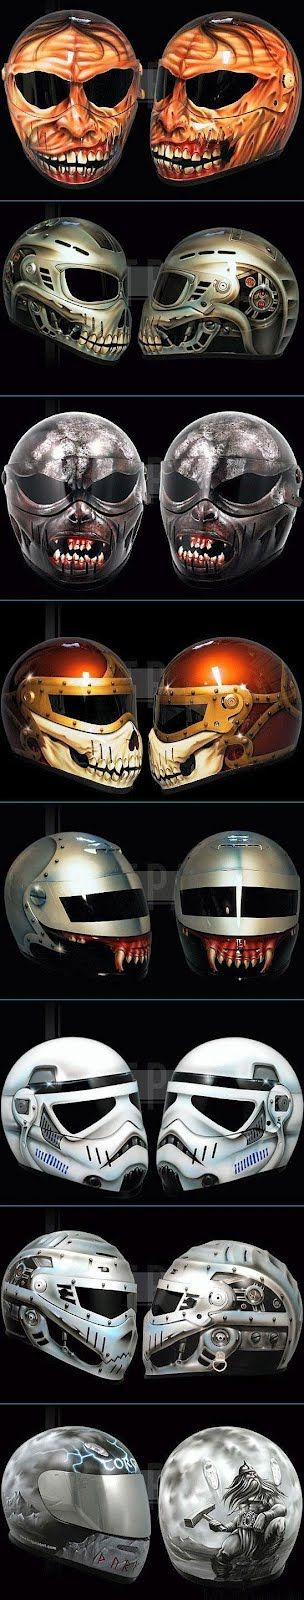 Have to get one of these helmets when I get another ATV. These are freaking awesome!